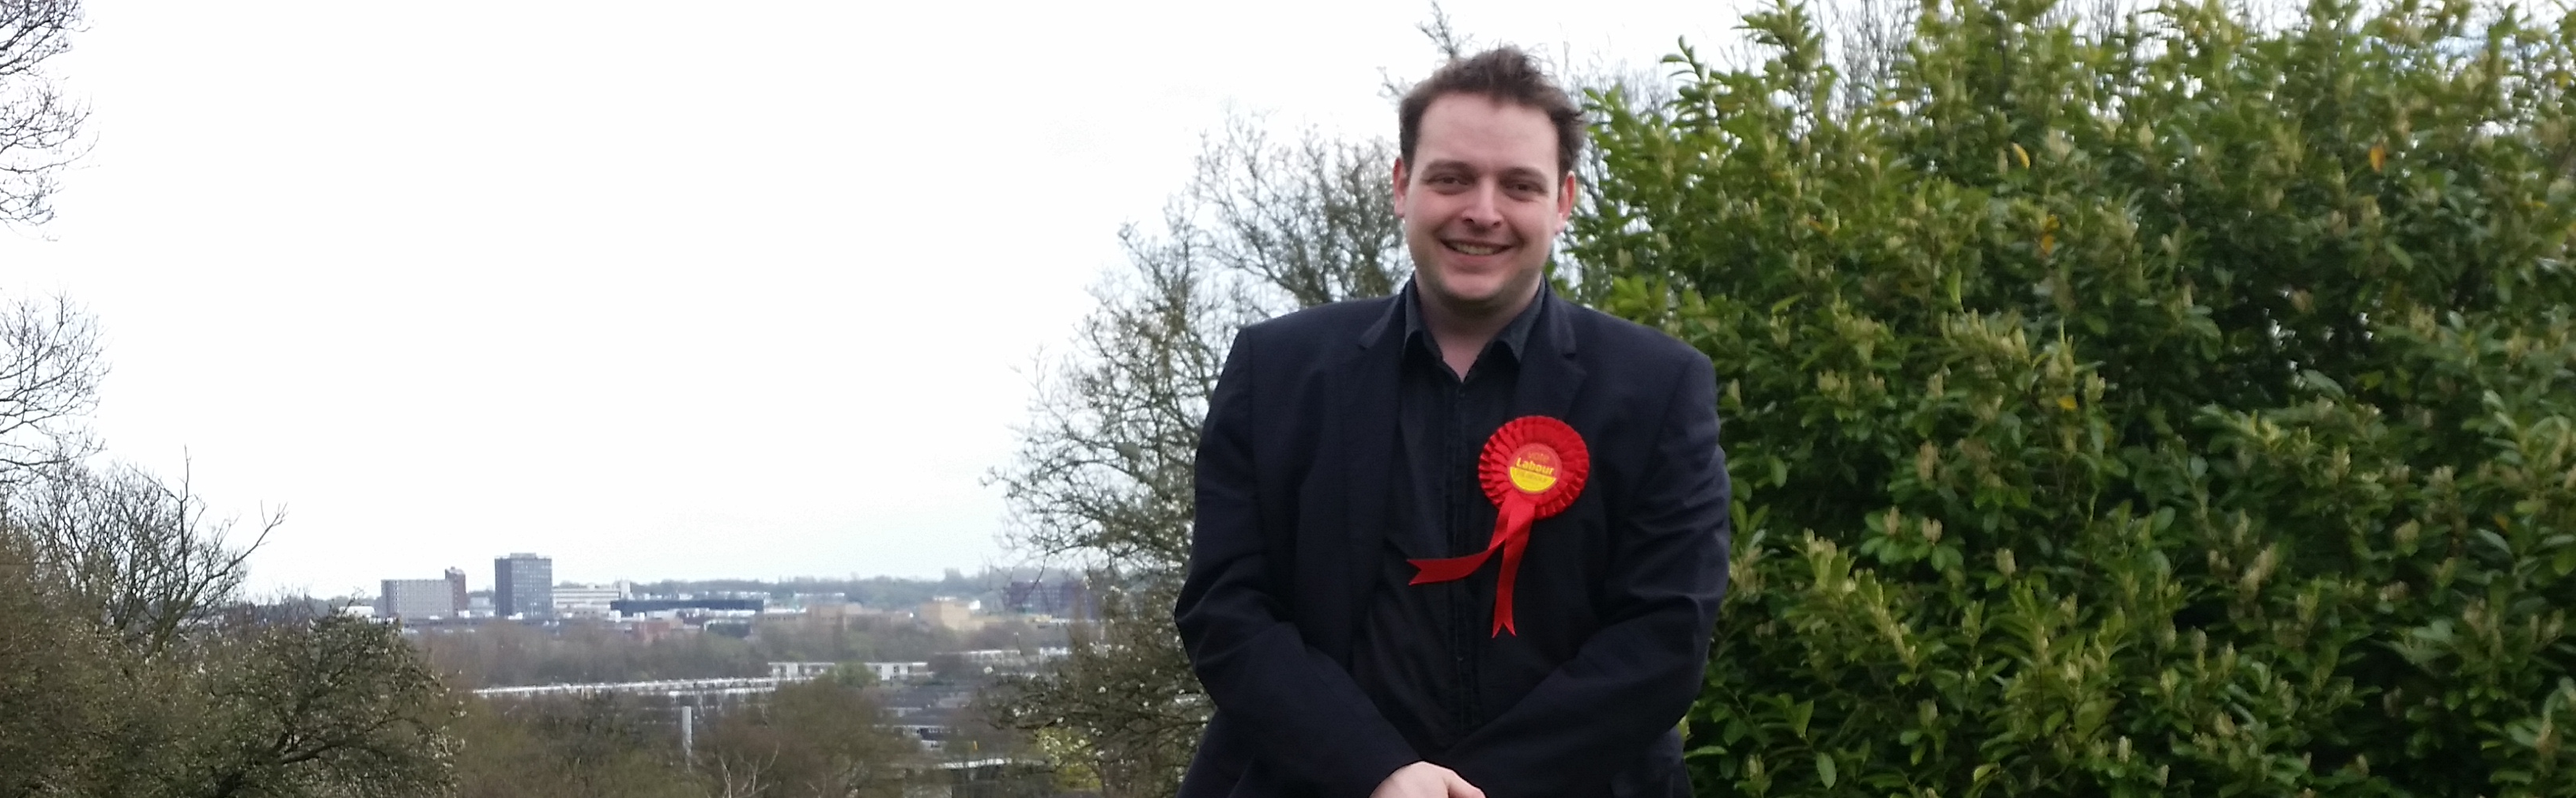 Meet Andrew Gordon, living with schizophrenia and a UK Labour party